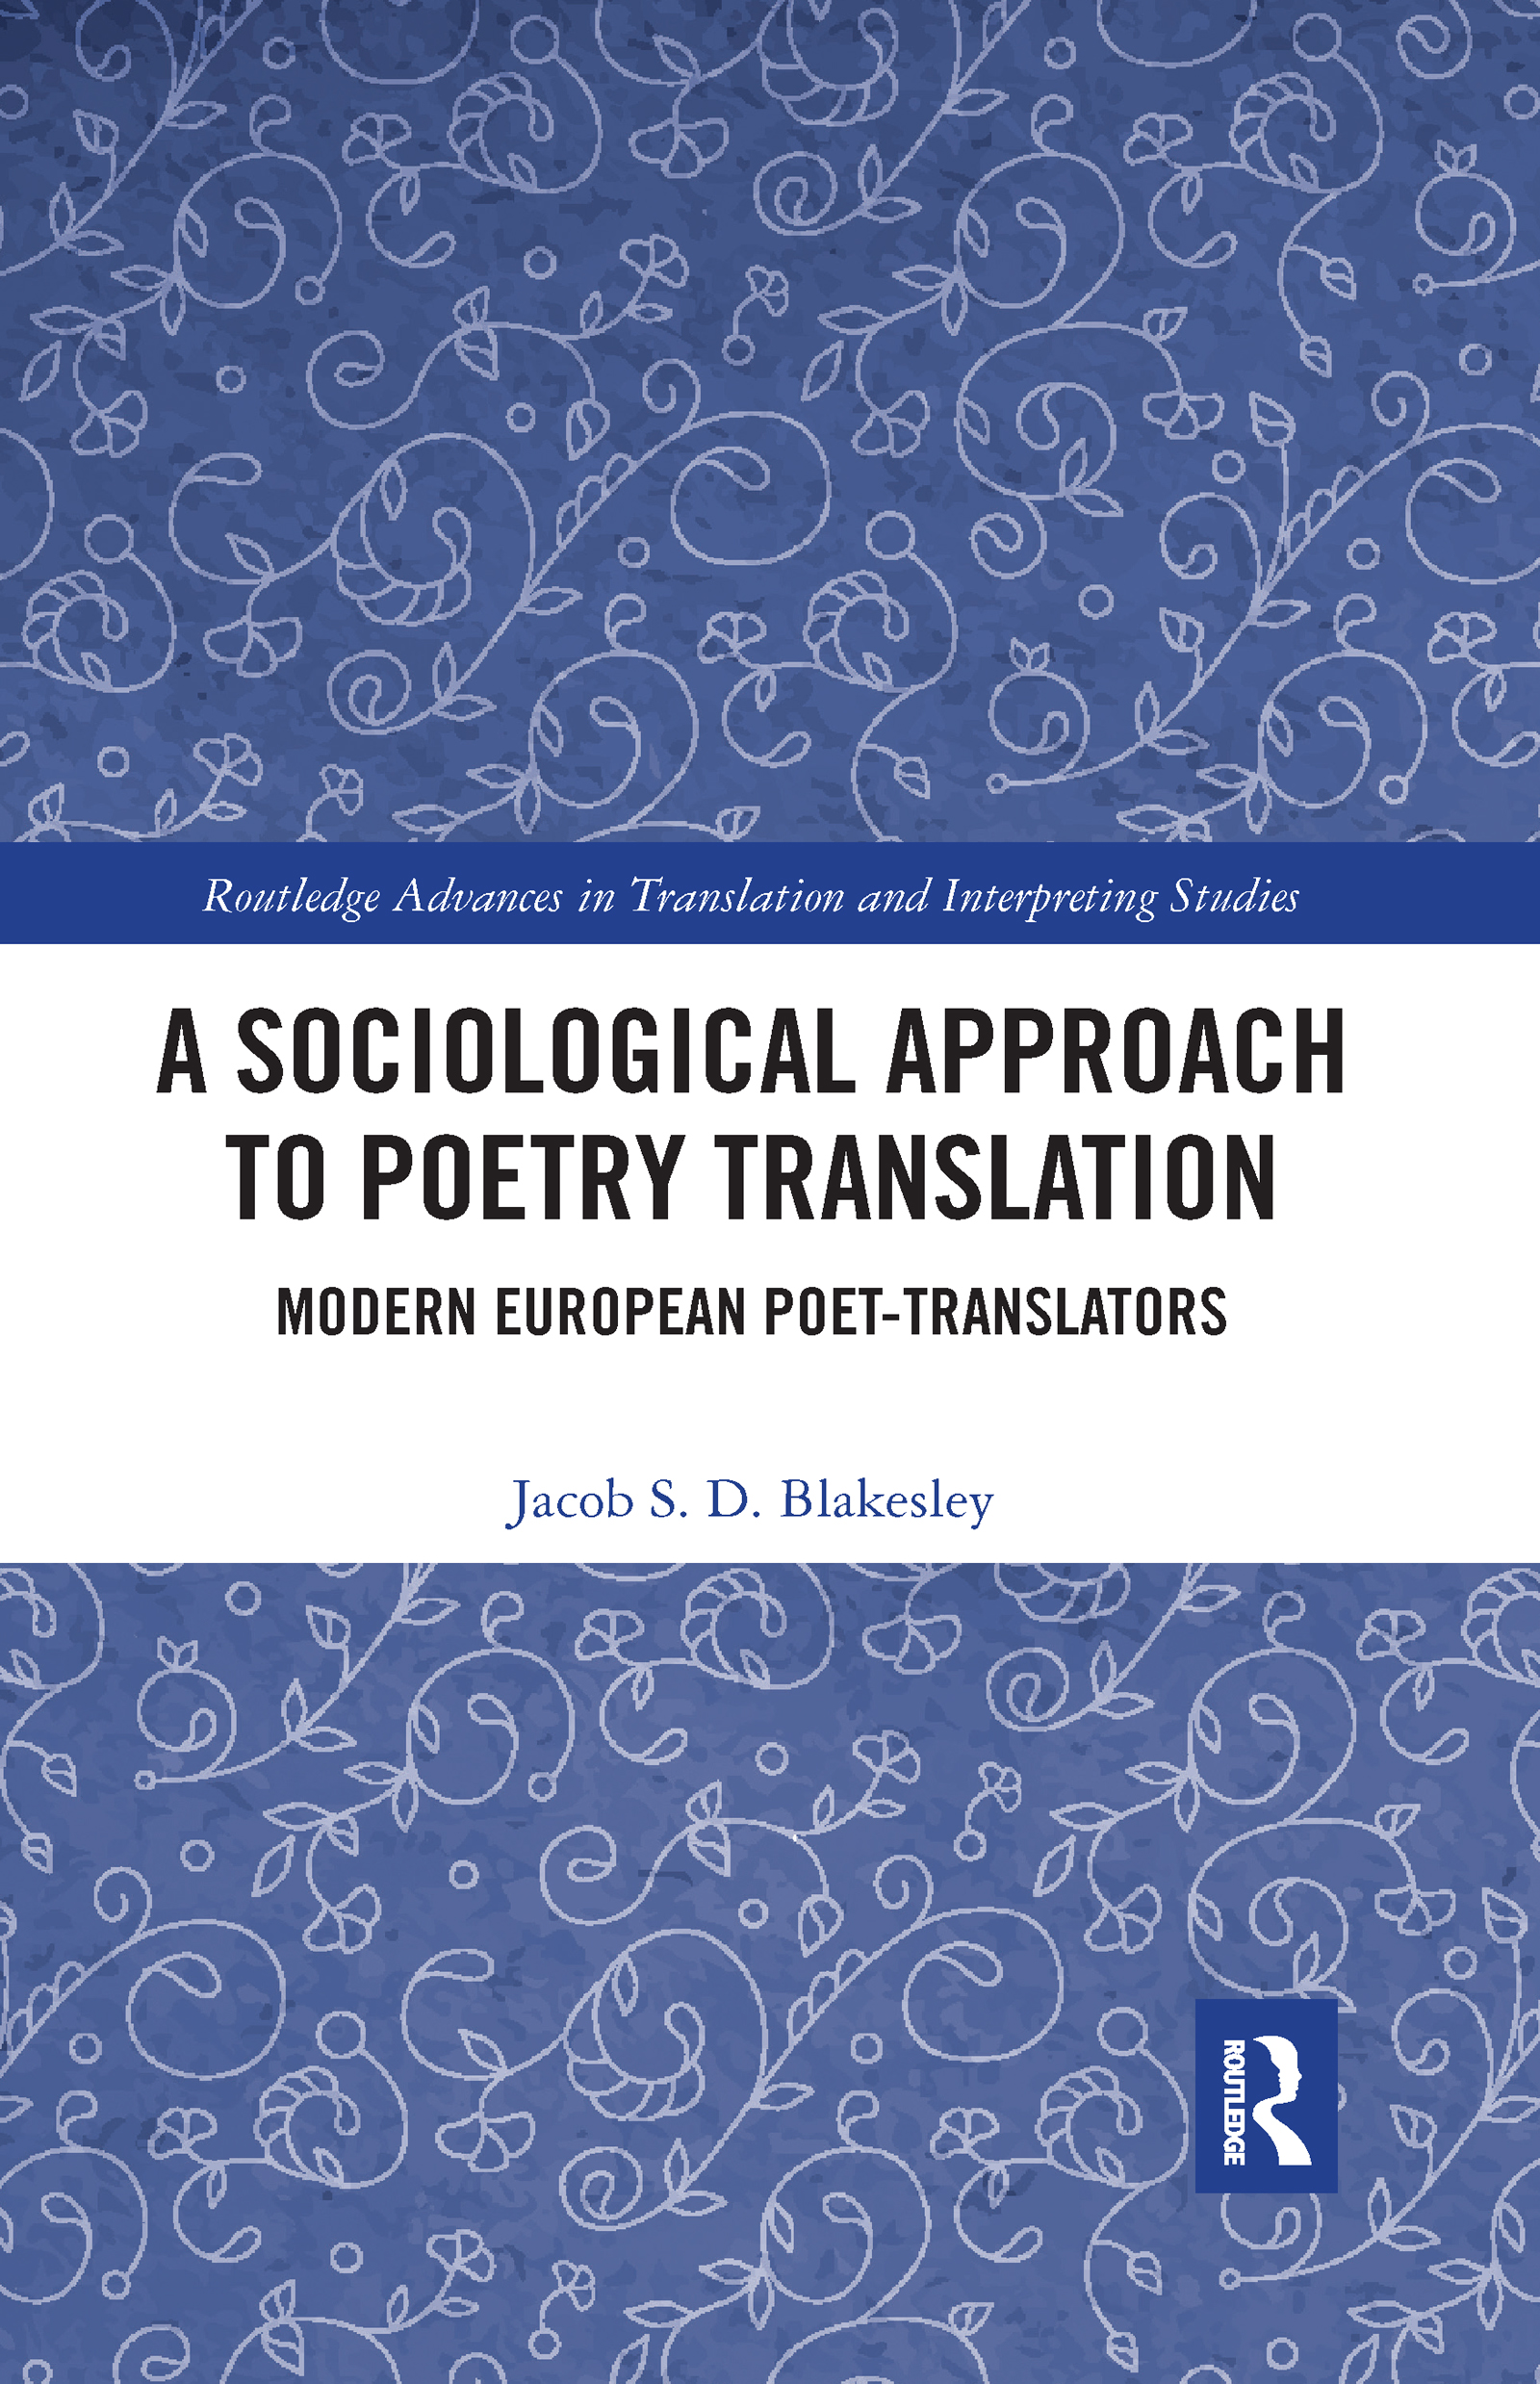 A Sociological Approach to Poetry Translation